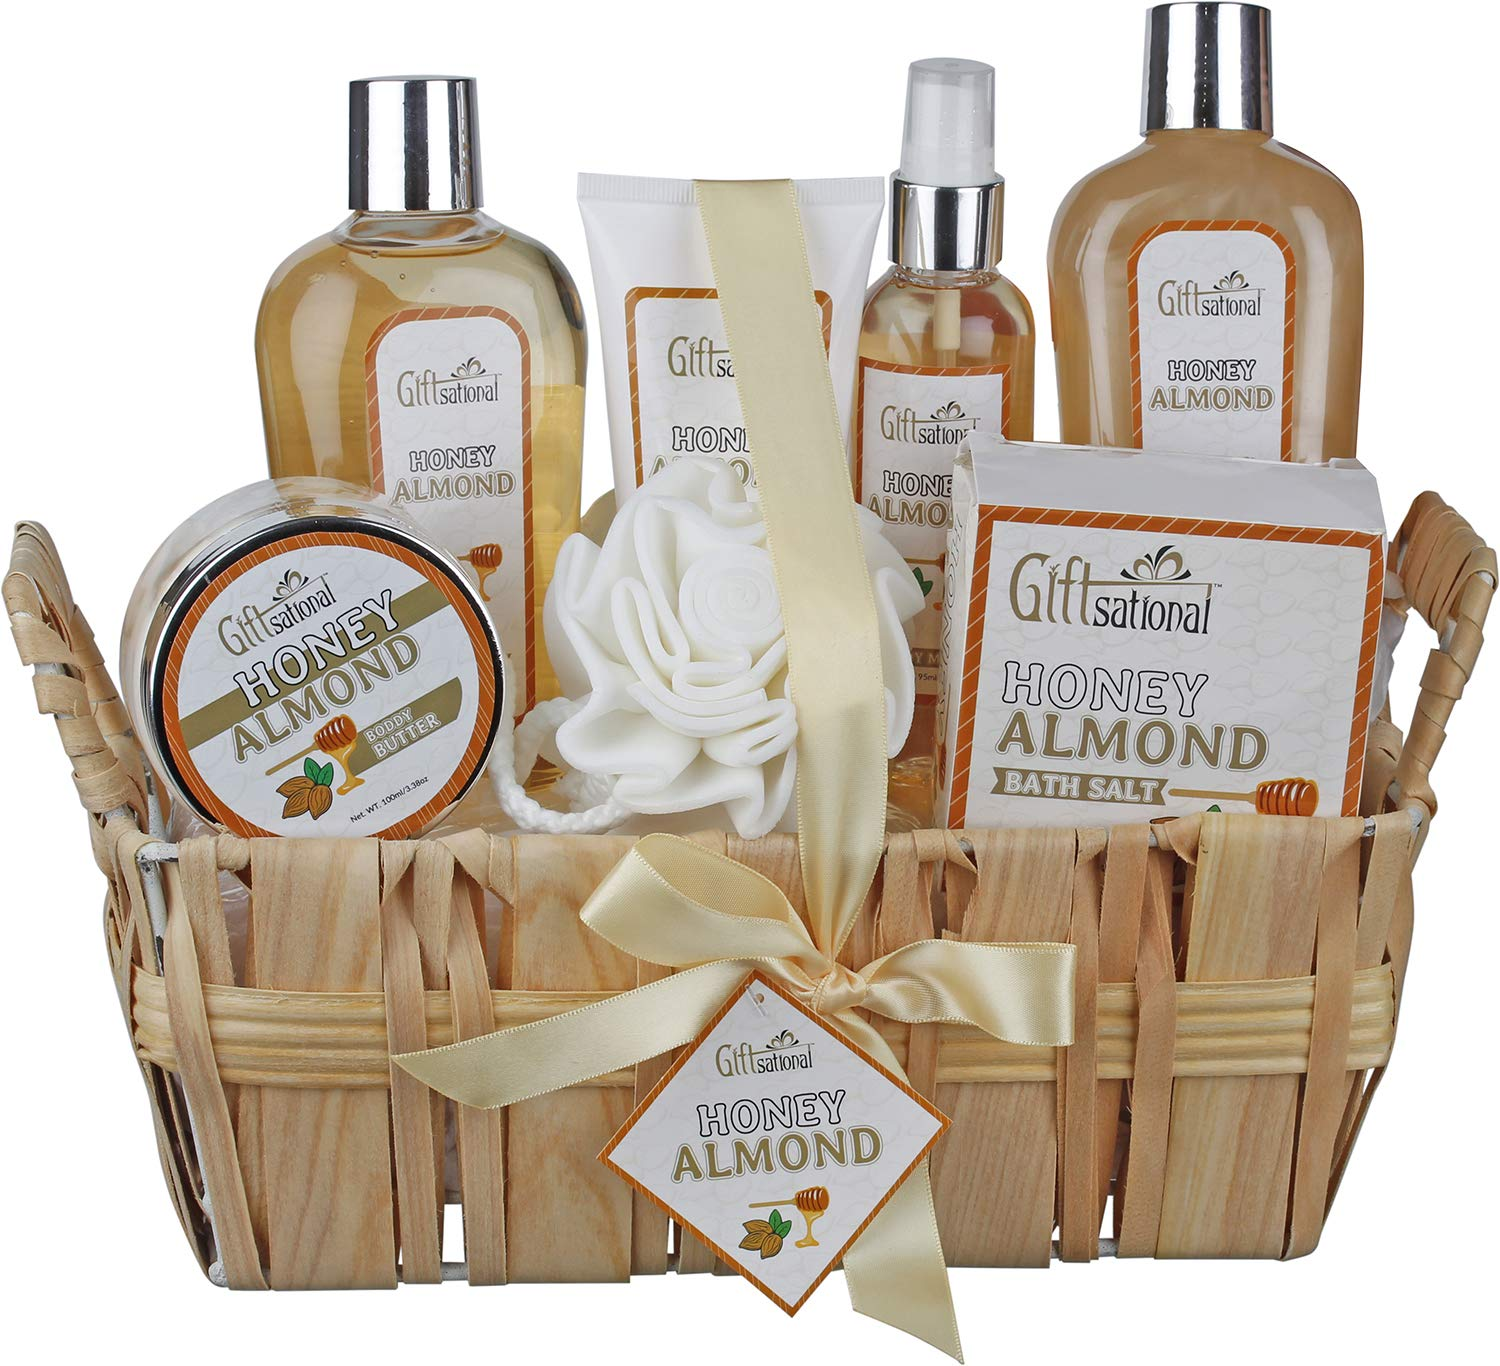 Spa Gift Basket with Honey Almond Fragrance, Includes Shower Gel, Bubble Bath, Body Lotion, Body Butter, and Much More, Great Birthday Anniversary or Christmas Gift for Women and Girls